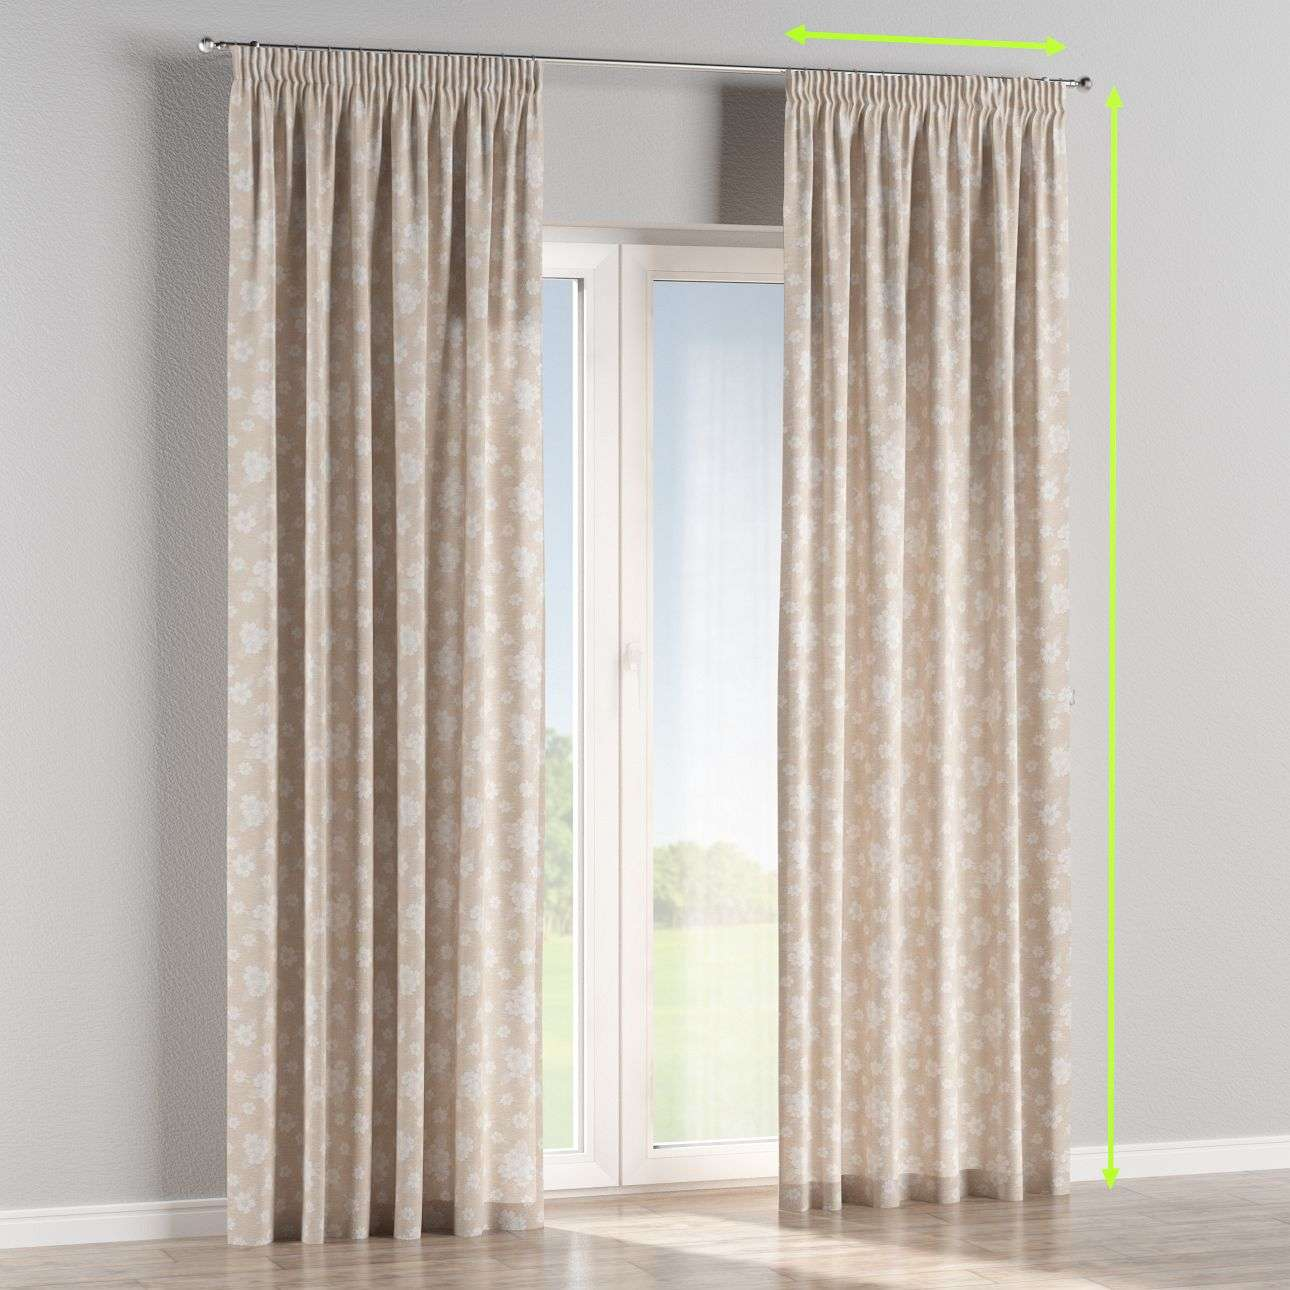 Pencil pleat lined curtains in collection Rustica, fabric: 138-26